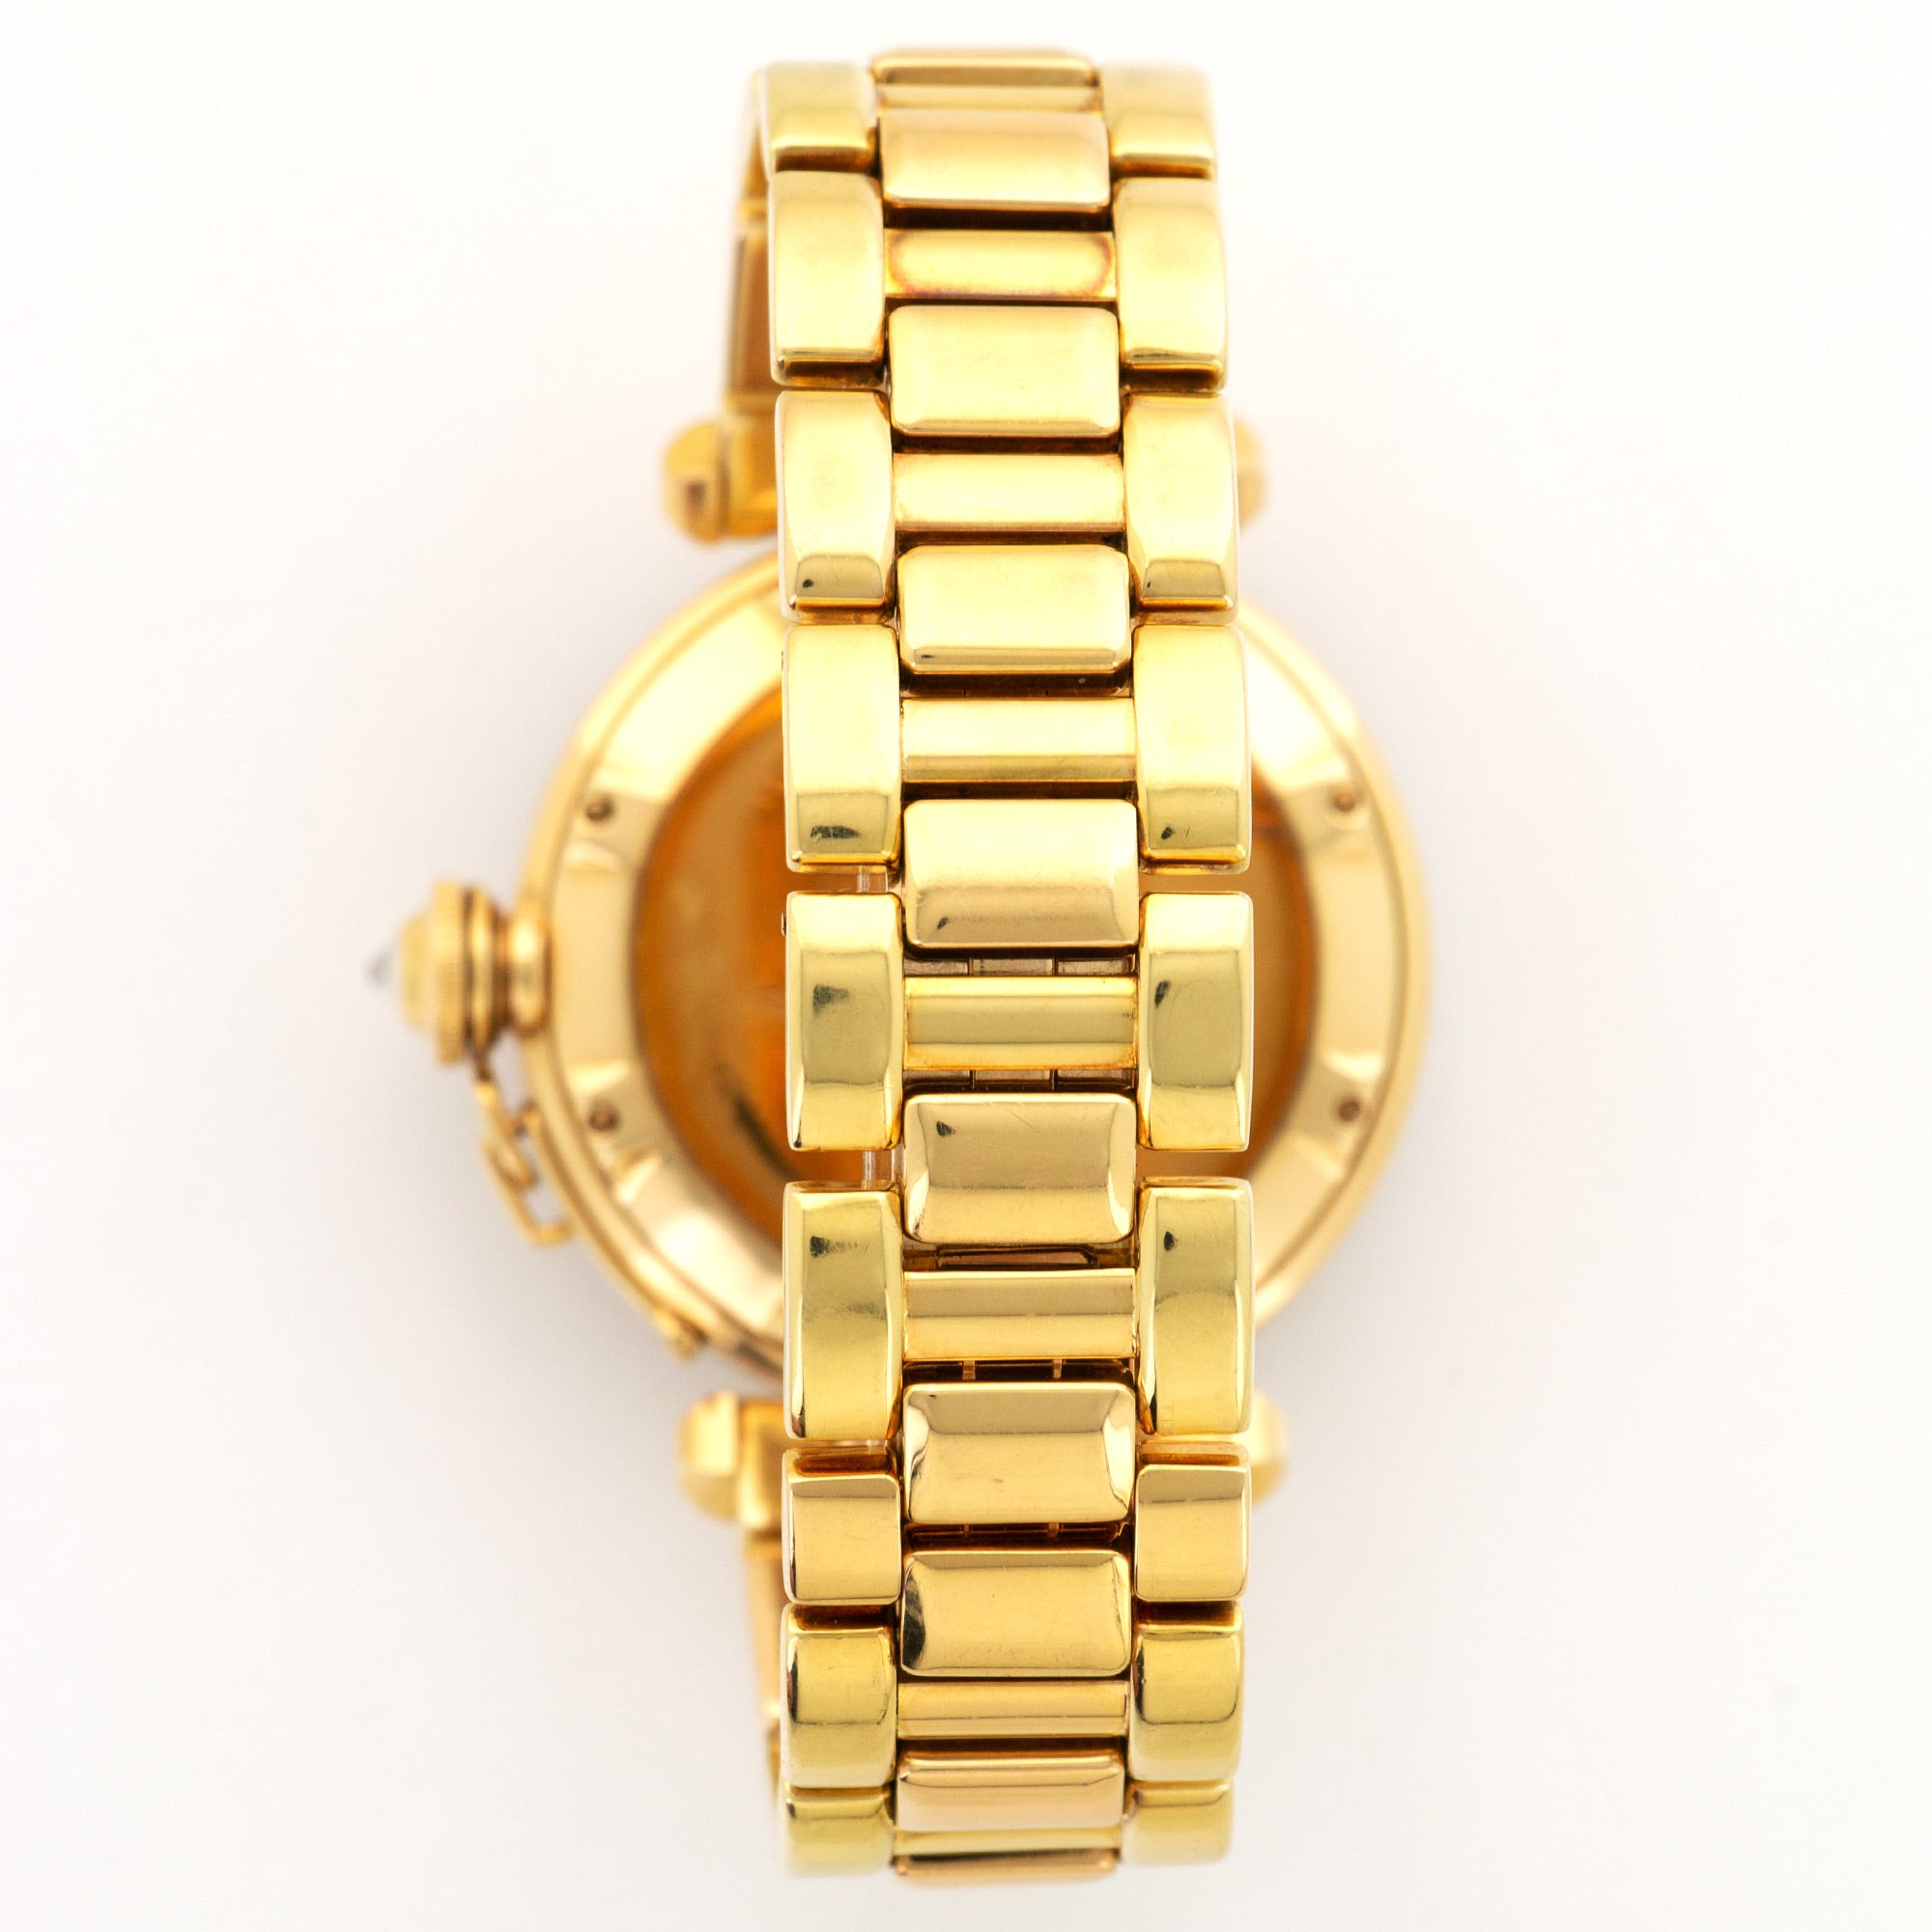 Cartier Pasha 1023 18k YG  Mint Unisex 18k YG Mother of Pearl 38mm Automatic 1990s Yellow Gold Bracelet Original Box